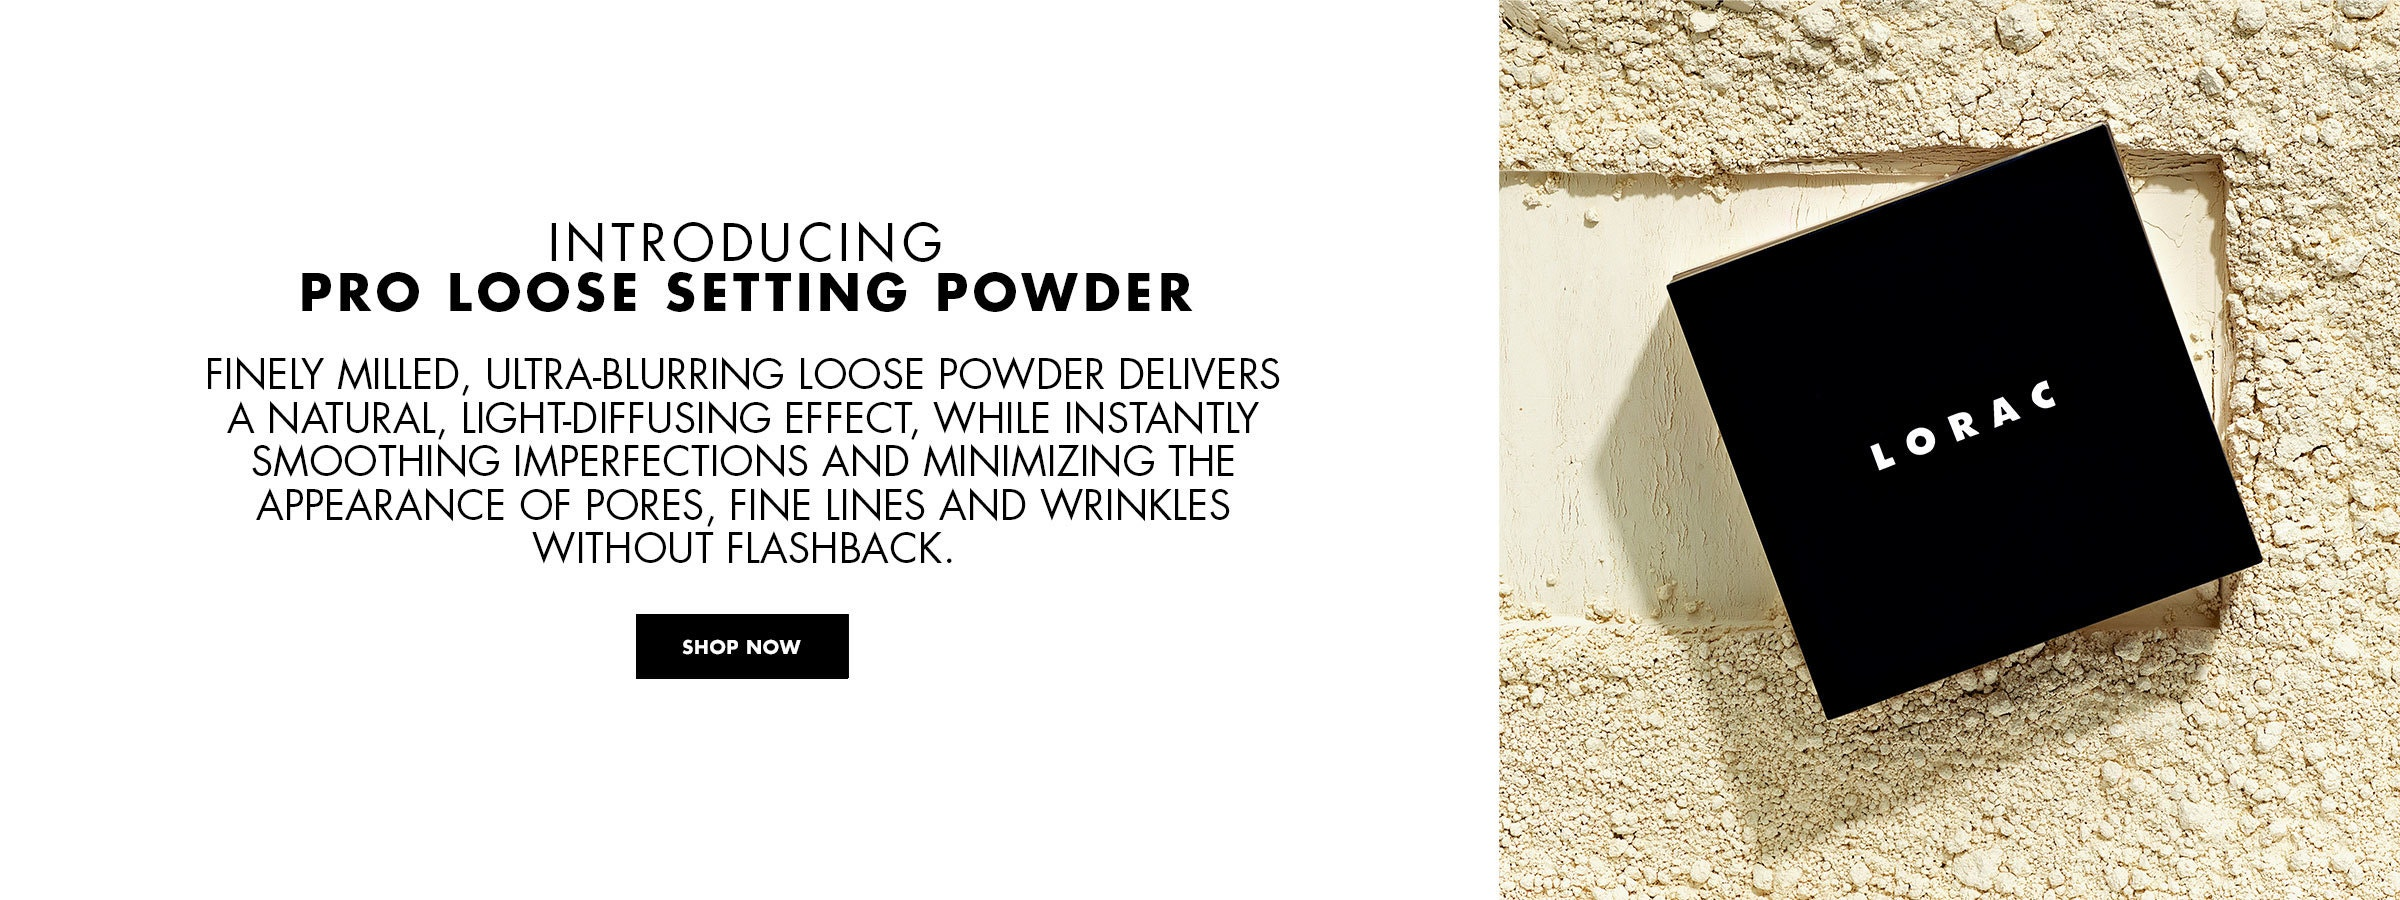 New PRO Loose Setting Powder | SHOP NOW | LORAC | Product lid front facing with powder in background